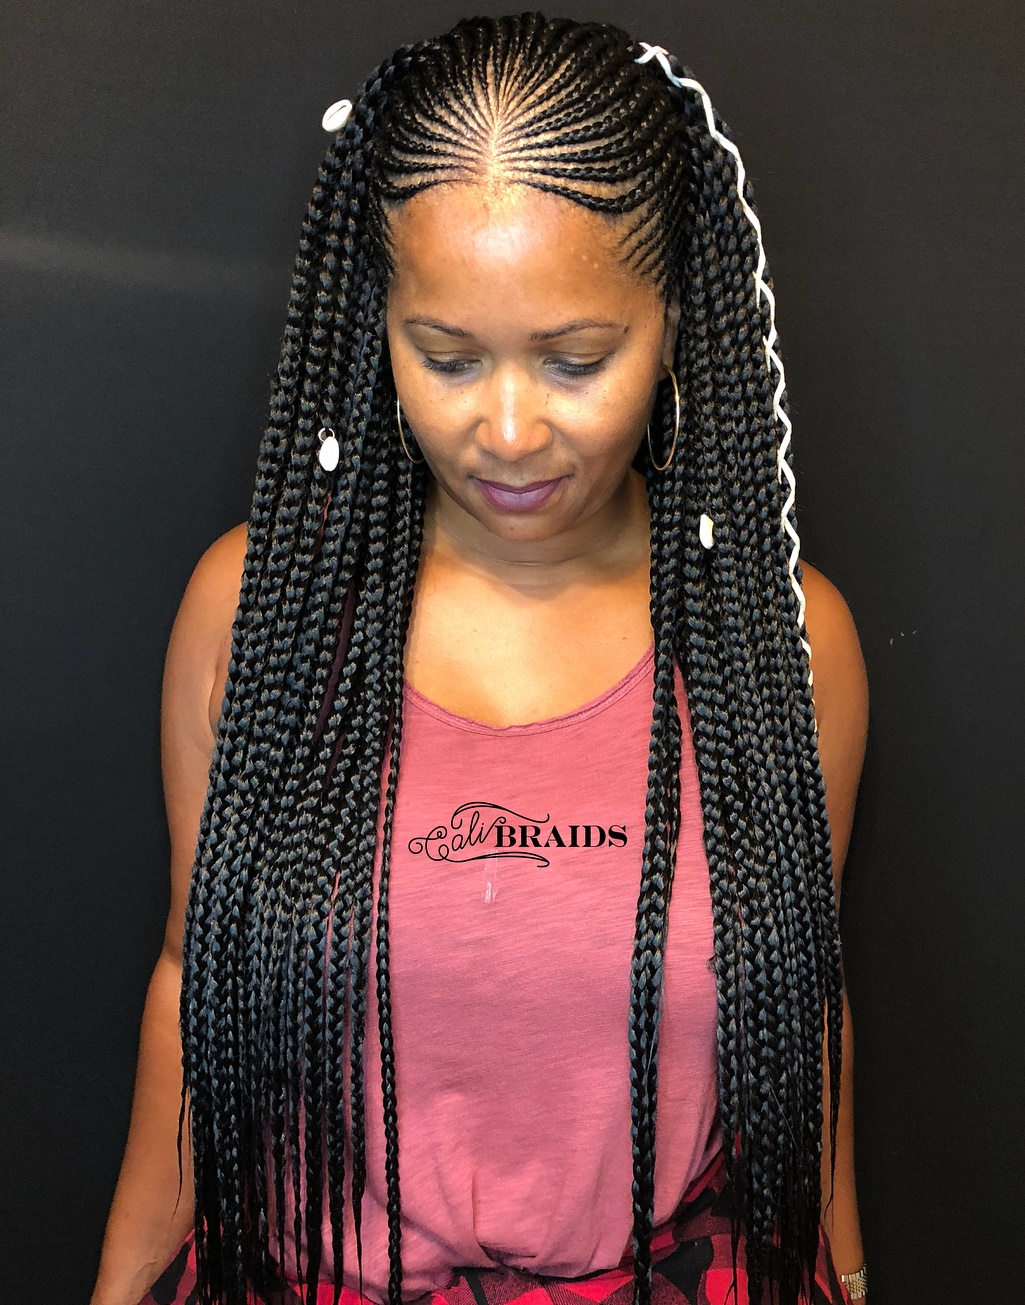 Wondrous 50 Really Working Protective Styles To Restore Your Hair Hair Schematic Wiring Diagrams Amerangerunnerswayorg